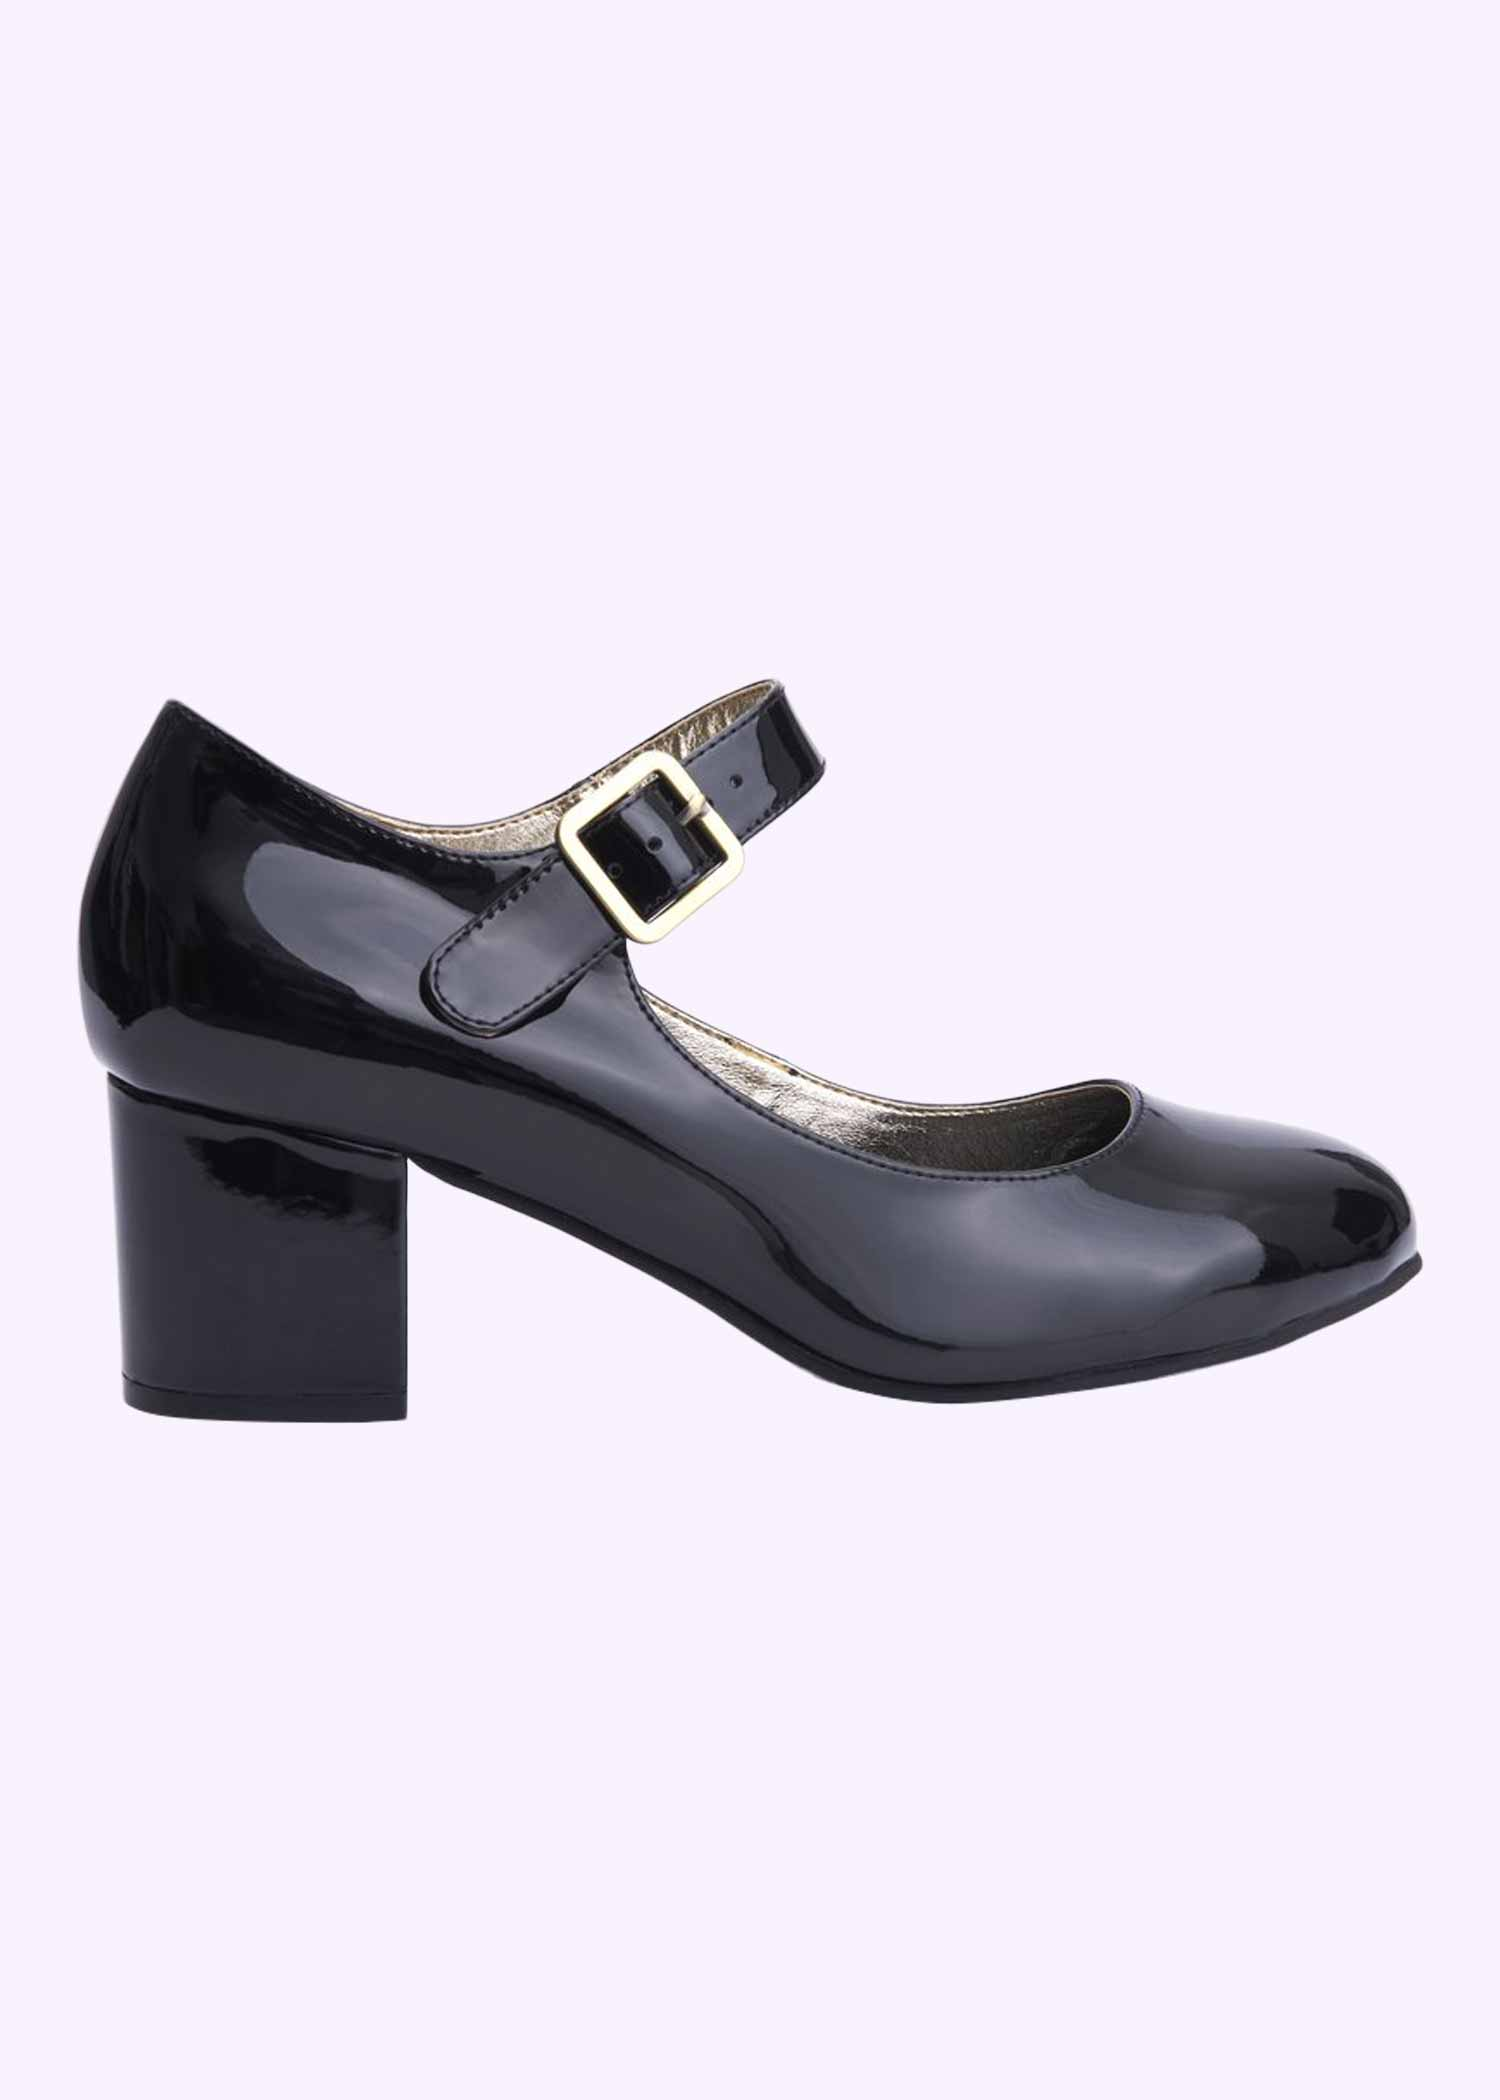 60s Mary Jane shoes in black lacquer from Lola Ramona